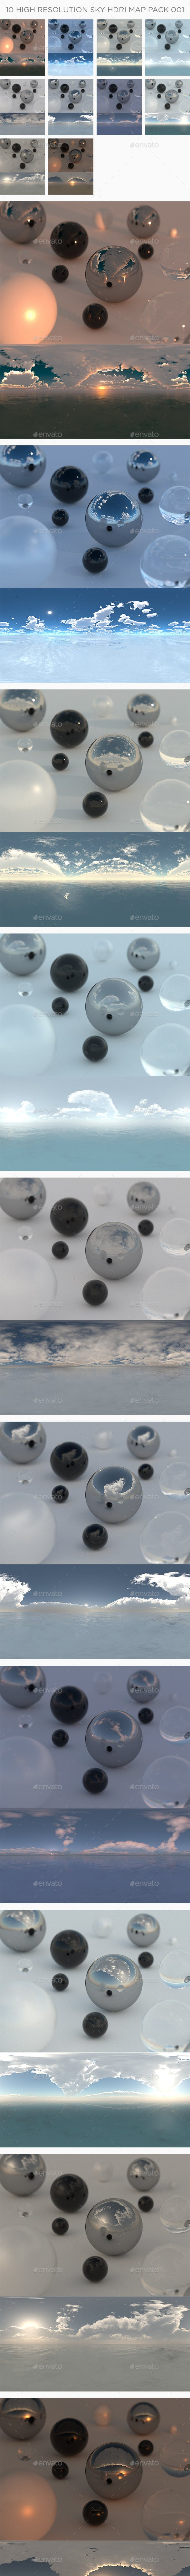 10 High Resolution Sky HDRi Maps Pack 001 - 3DOcean Item for Sale